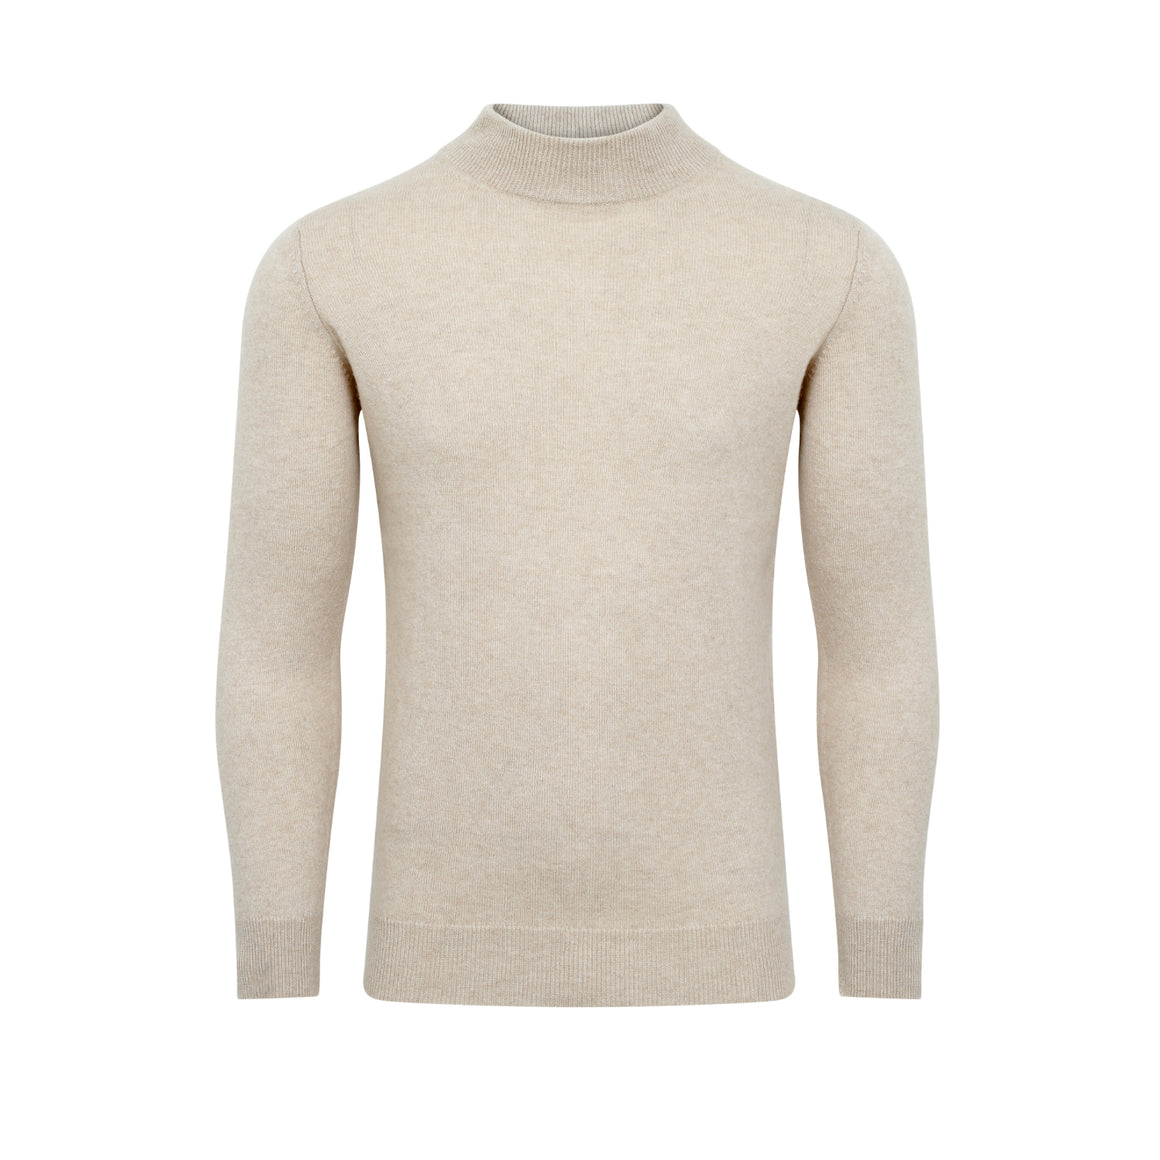 Lomond - Mens Cashmere Turtle Neck Sweater